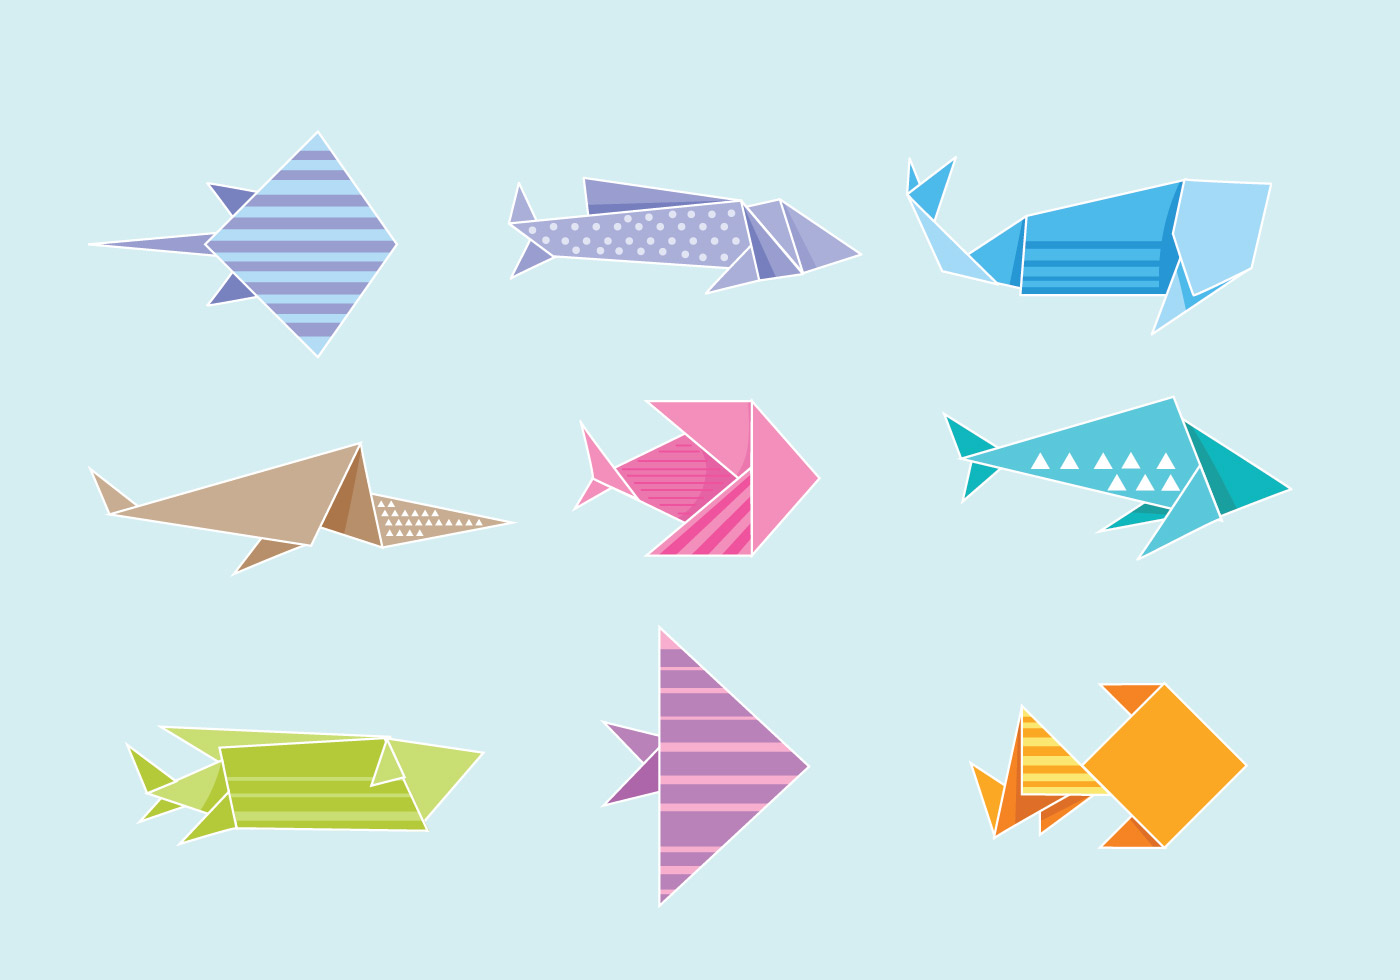 Set of Fish Origami - Download Free Vector Art, Stock ... - photo#34